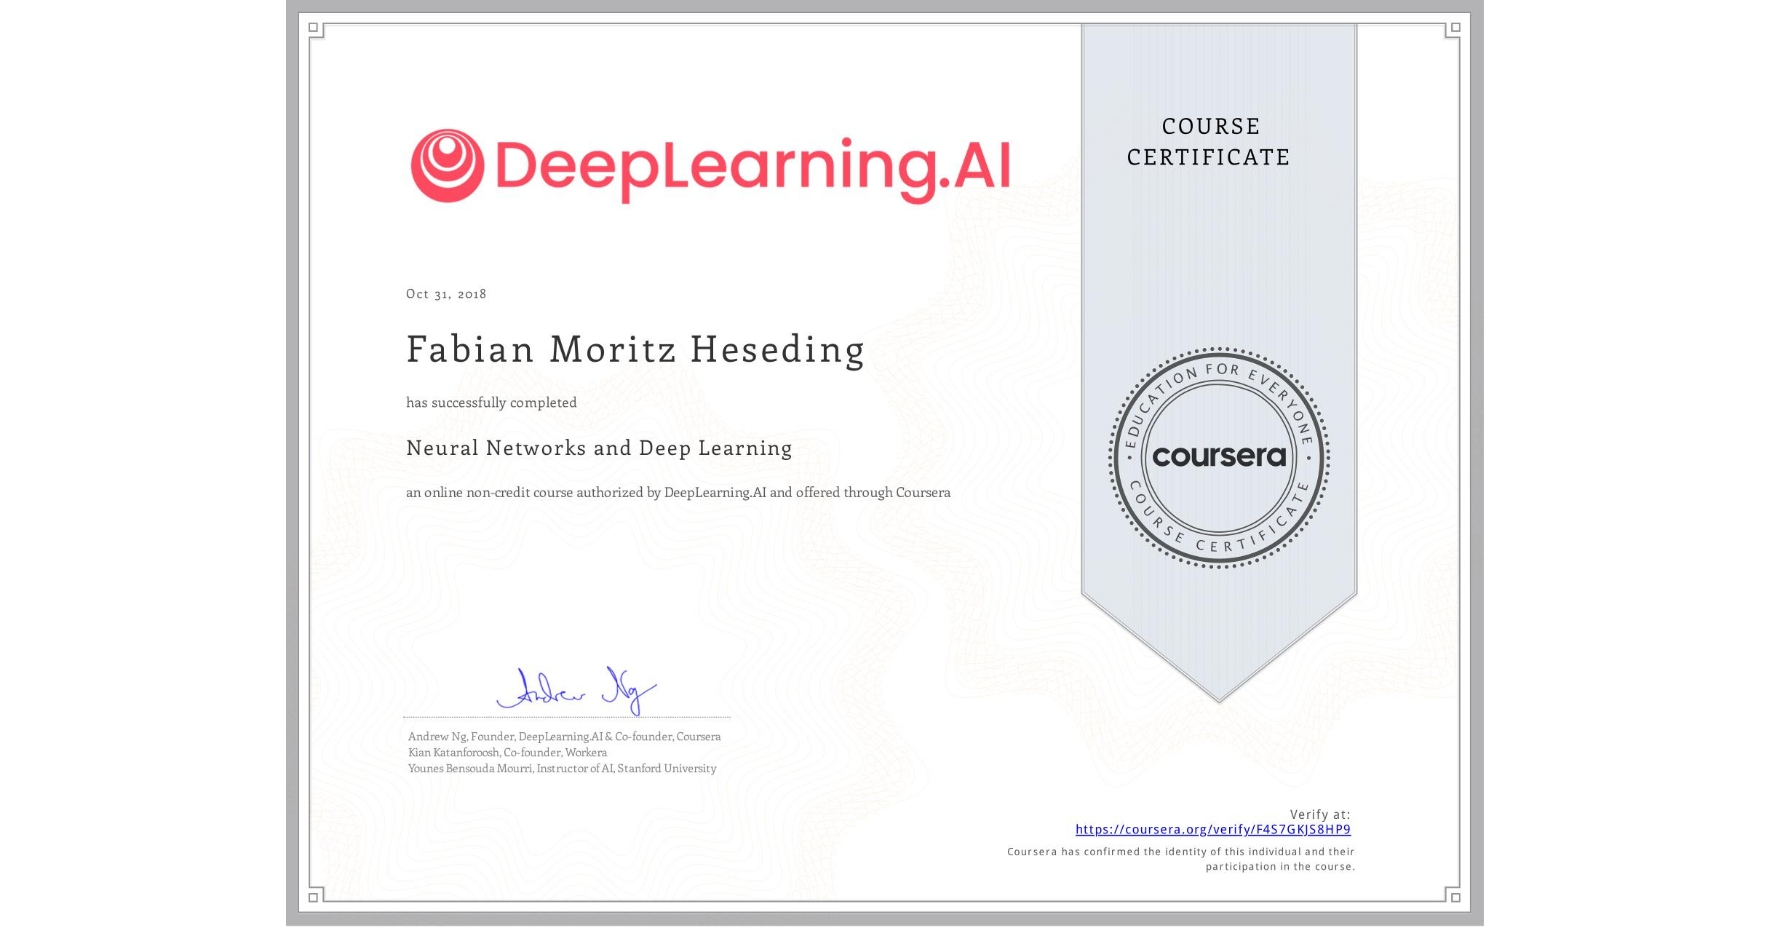 View certificate for Fabian Moritz Heseding, Neural Networks and Deep Learning, an online non-credit course authorized by DeepLearning.AI and offered through Coursera